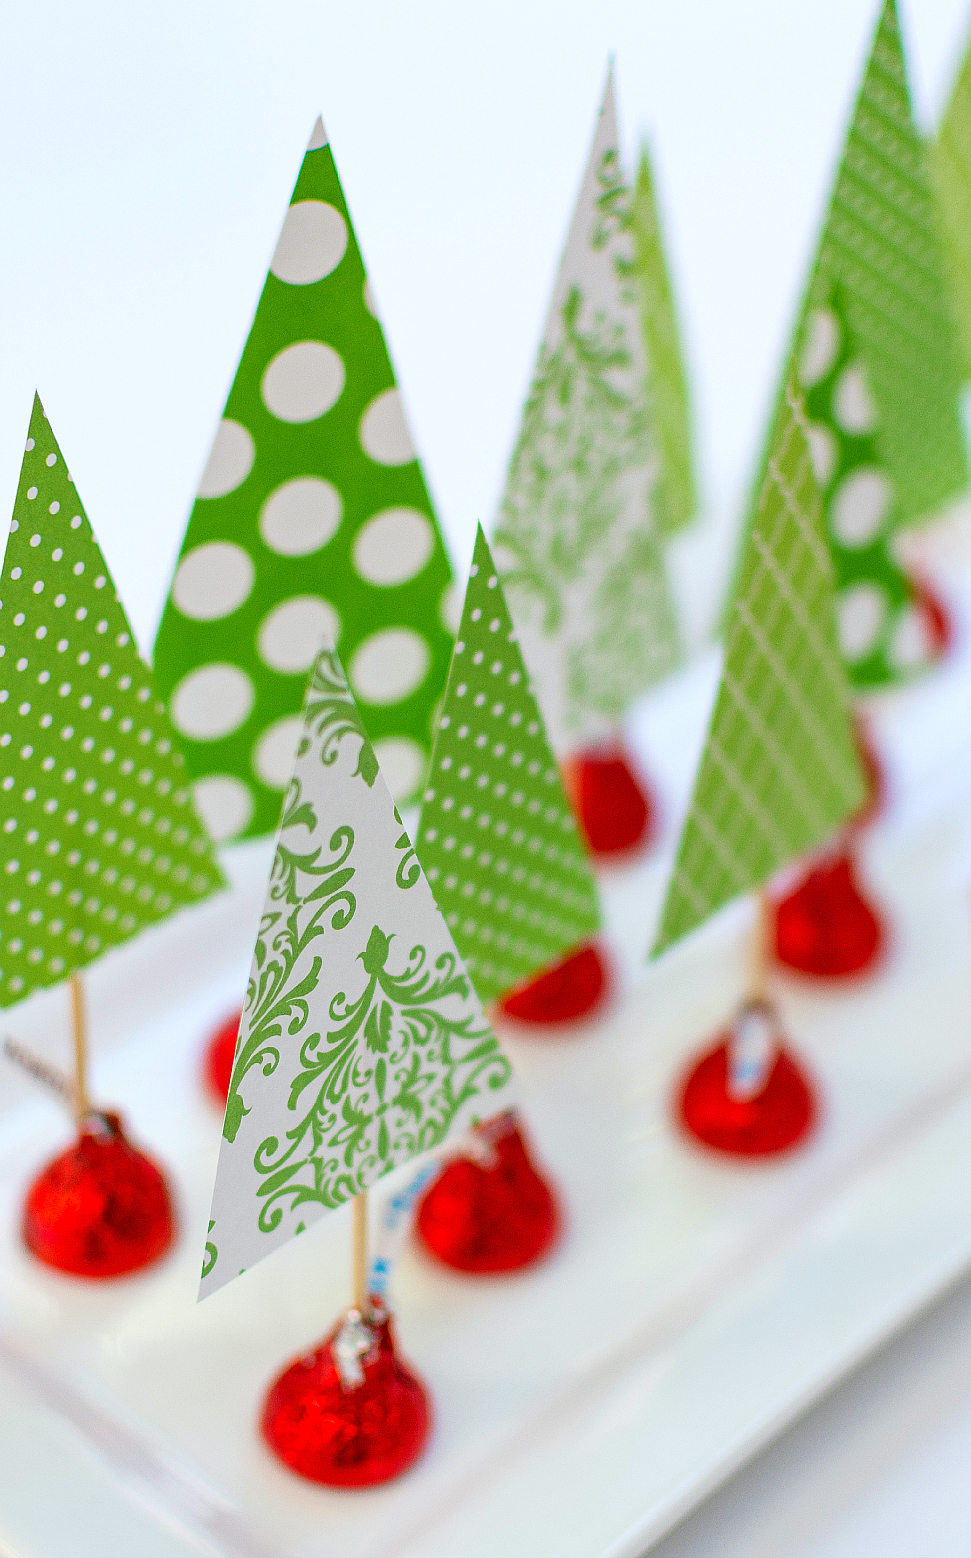 25 forest of treats - Cheap Christmas Table Decorations